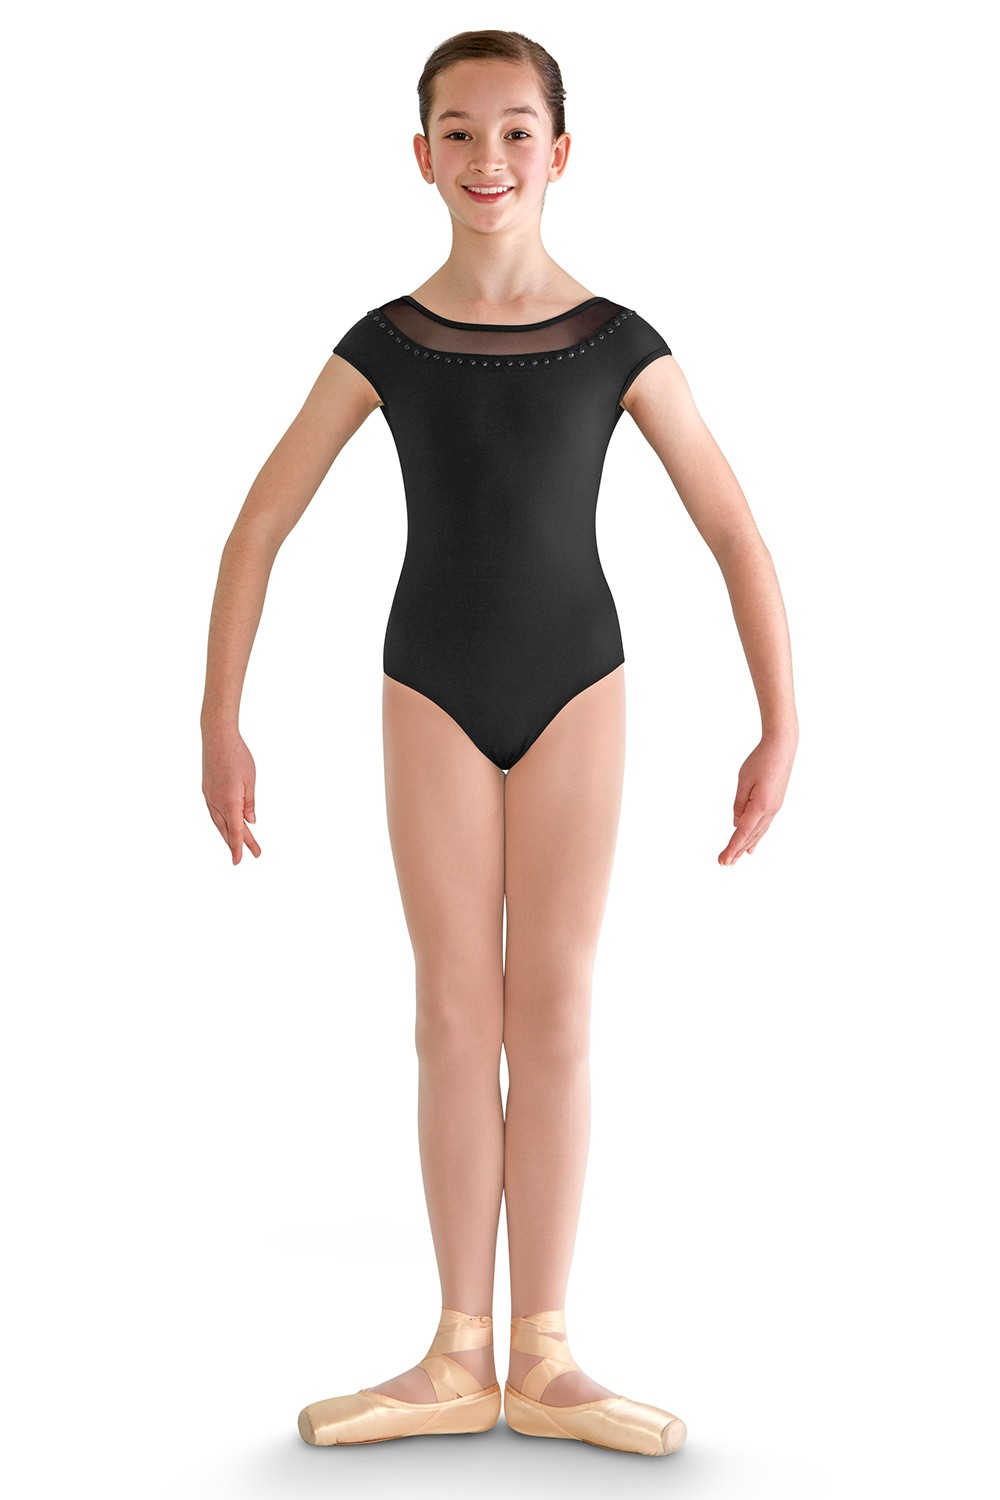 Fremont Children's Dance Leotards